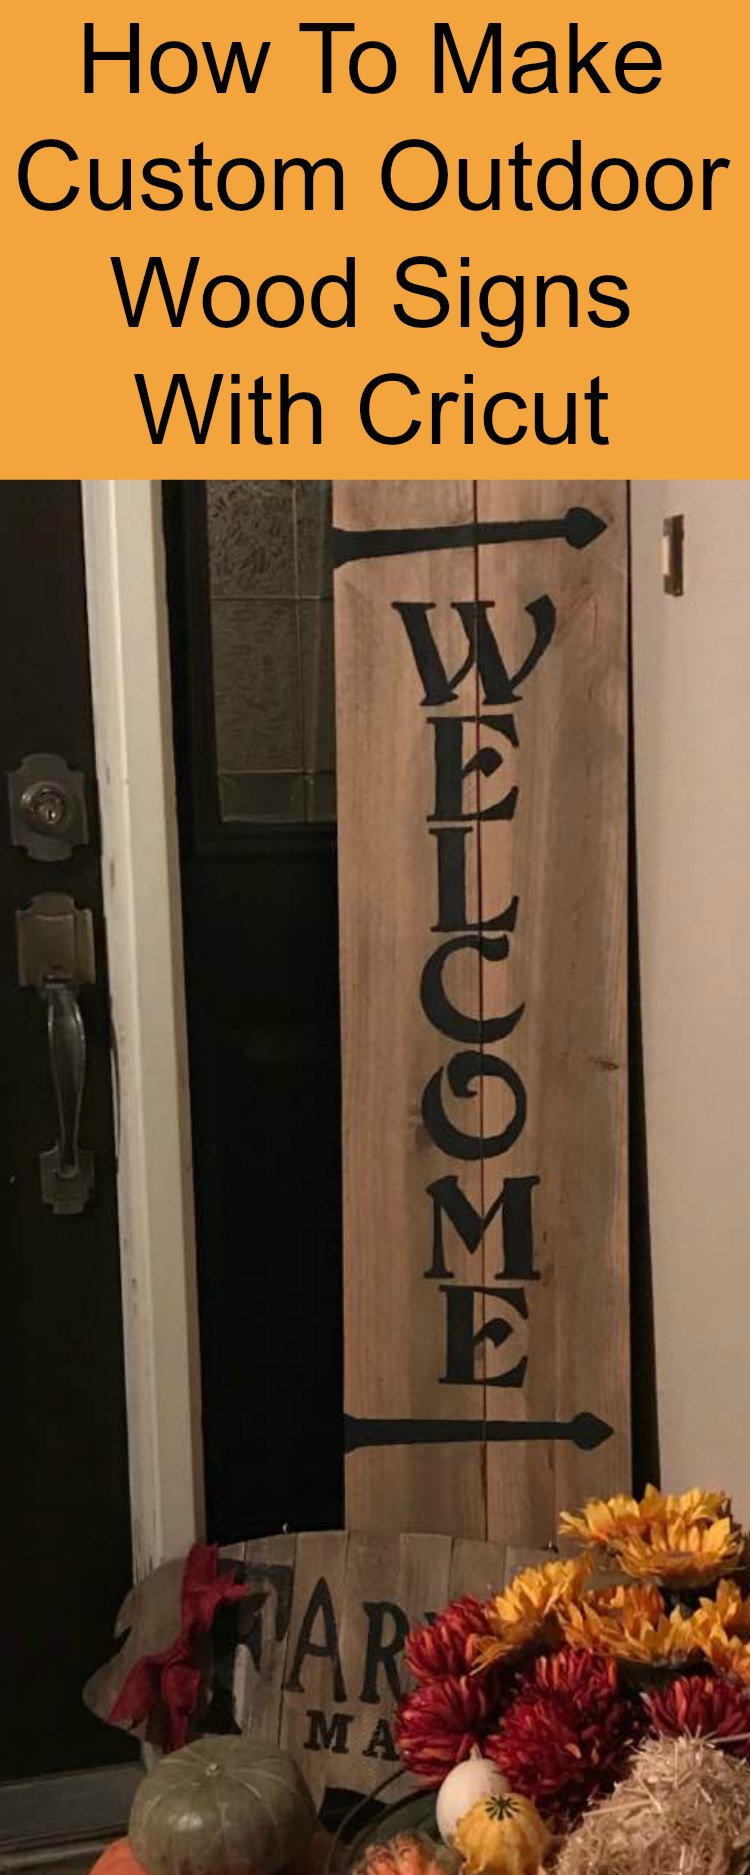 How To Make Custom Outdoor Wood Signs with Cricut PIN